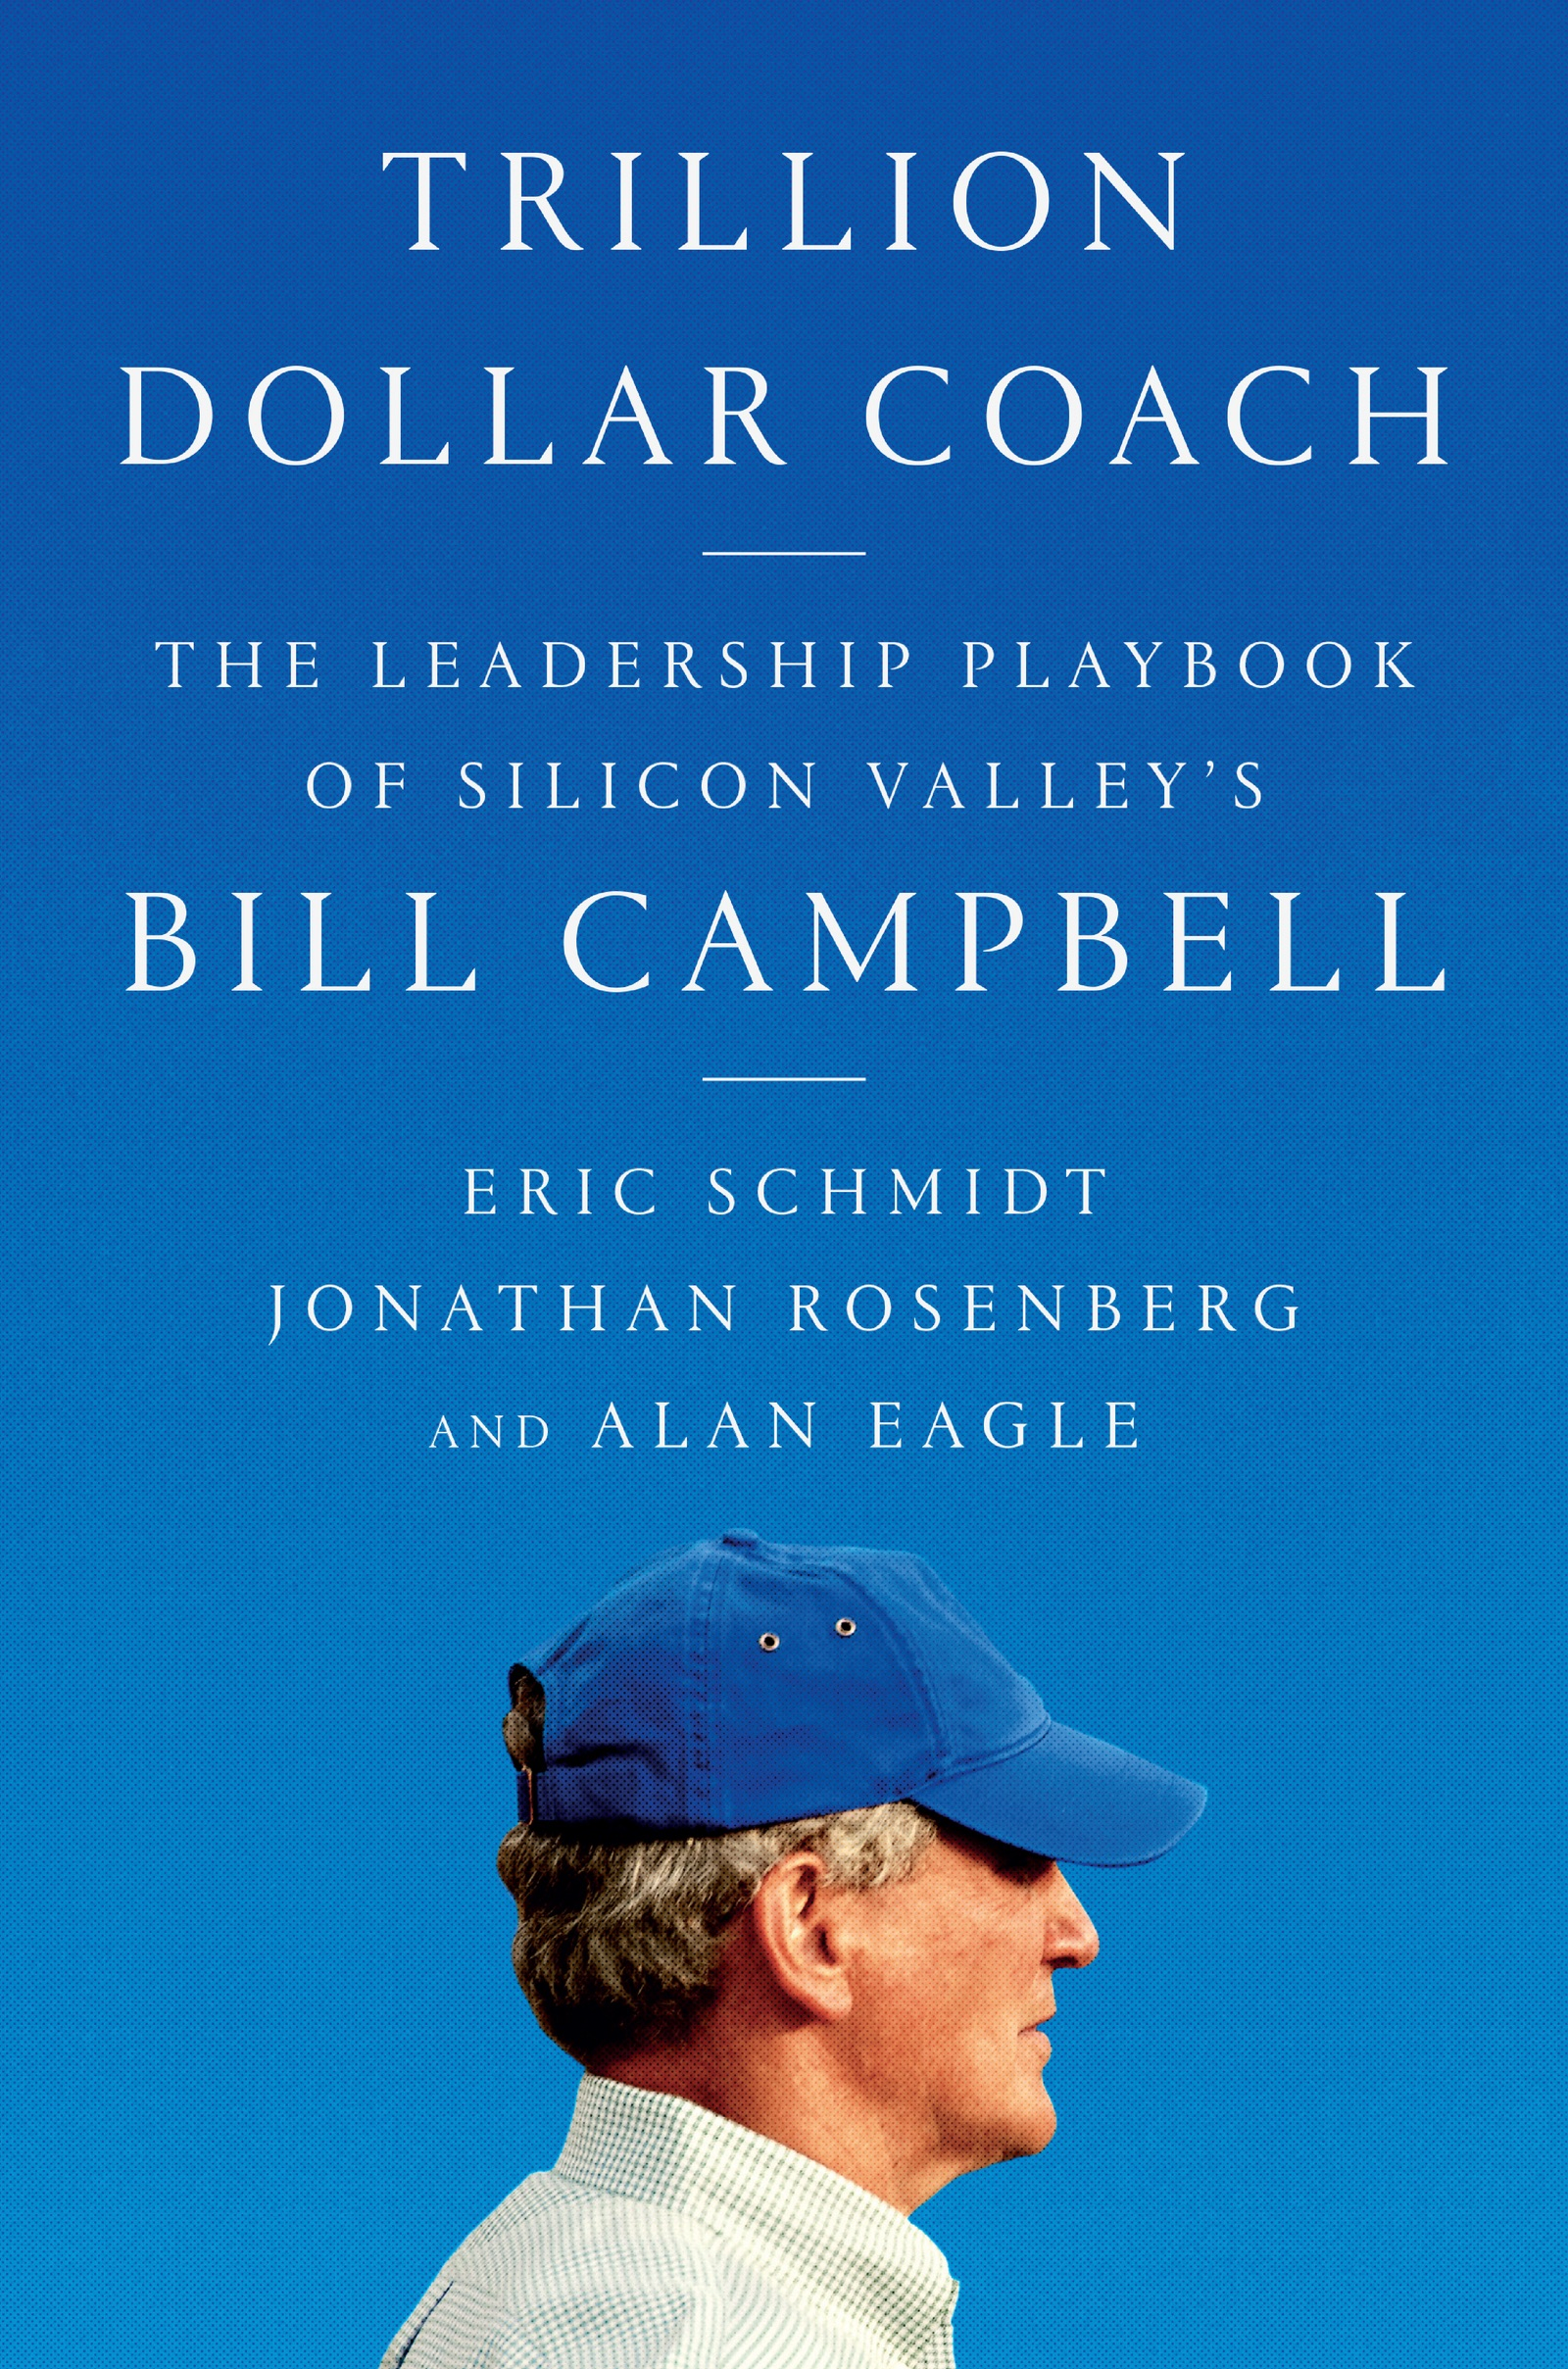 Book Cover of Trillion Dollar Coach